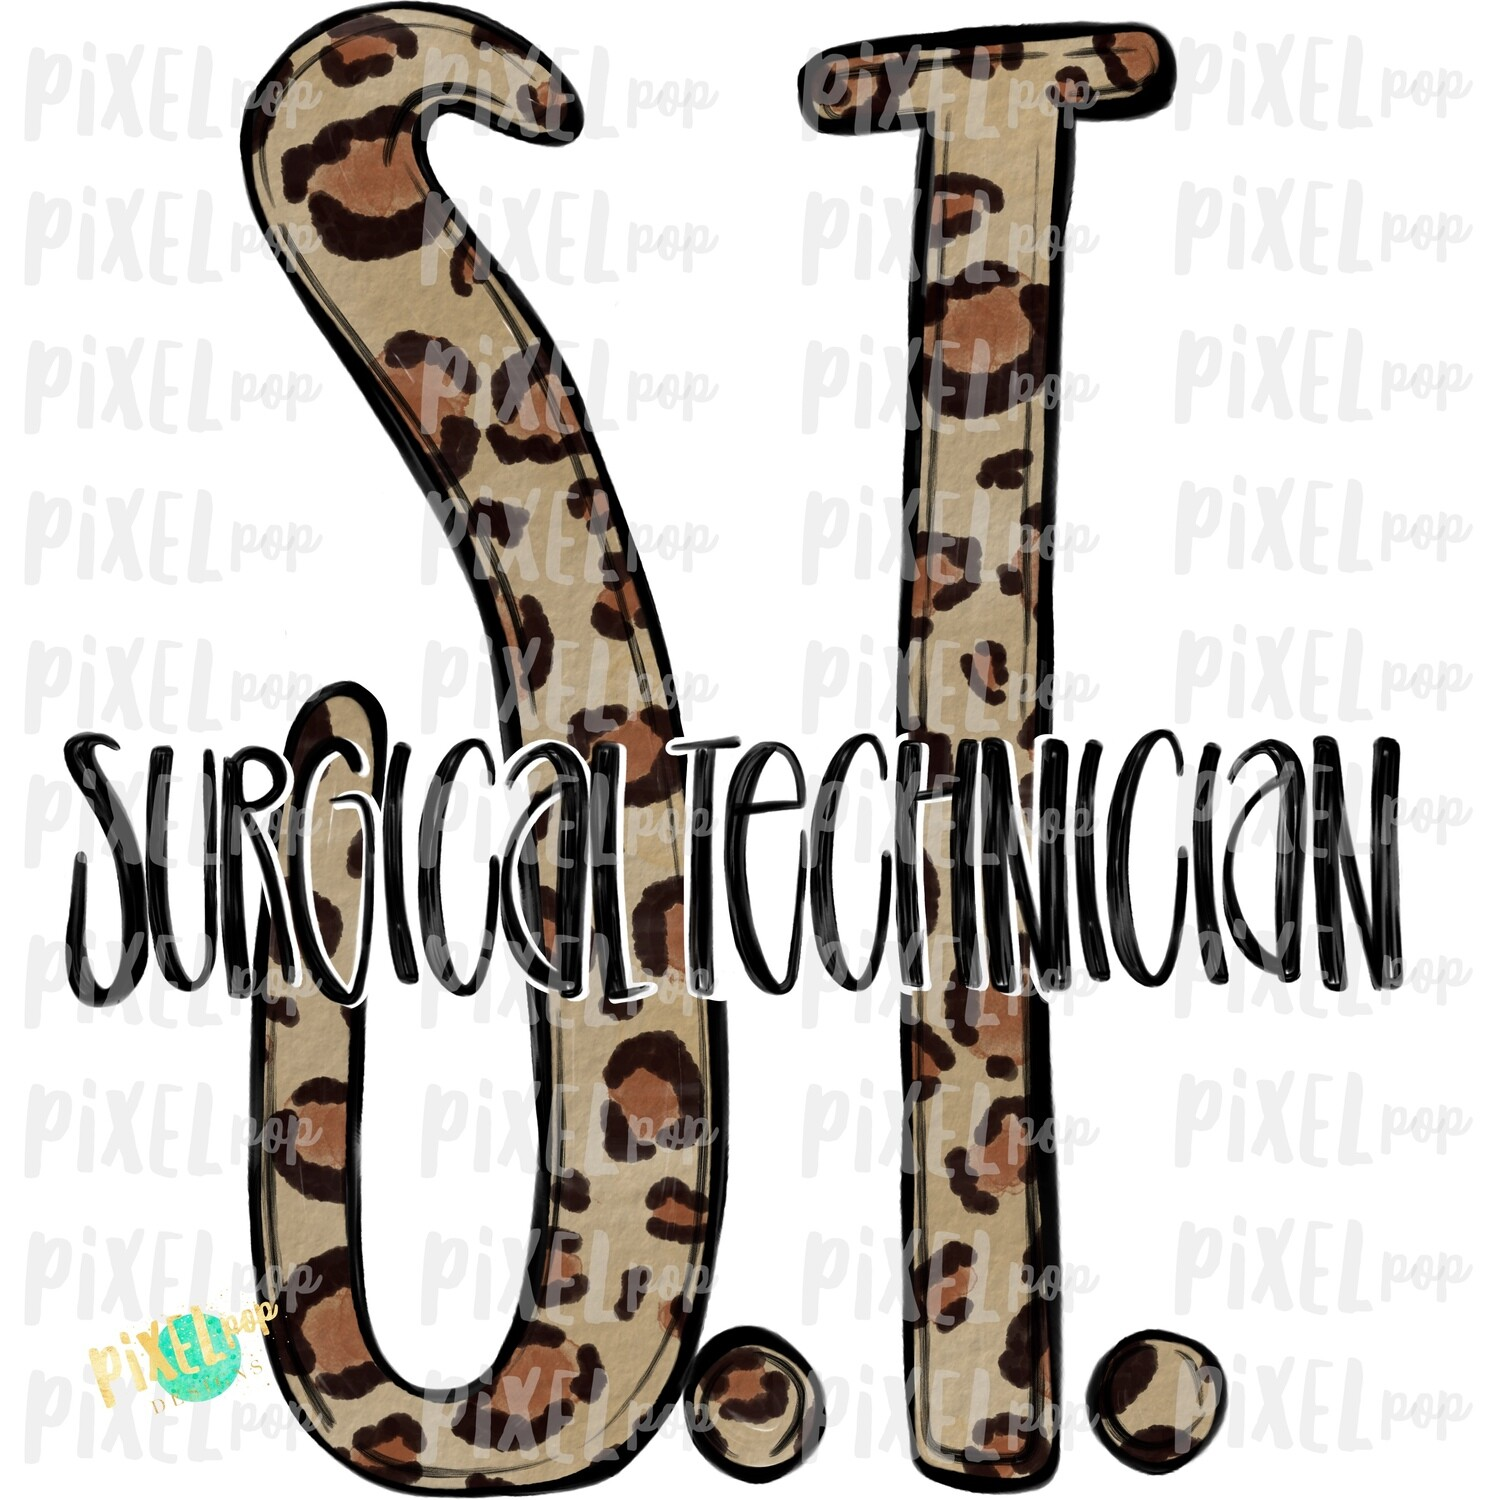 Surgical Technician ST Leopard Sublimation Design | Sublimation | Hand Drawn Art | Nursing PNG | Medical Art | Digital Download | Art Clipart